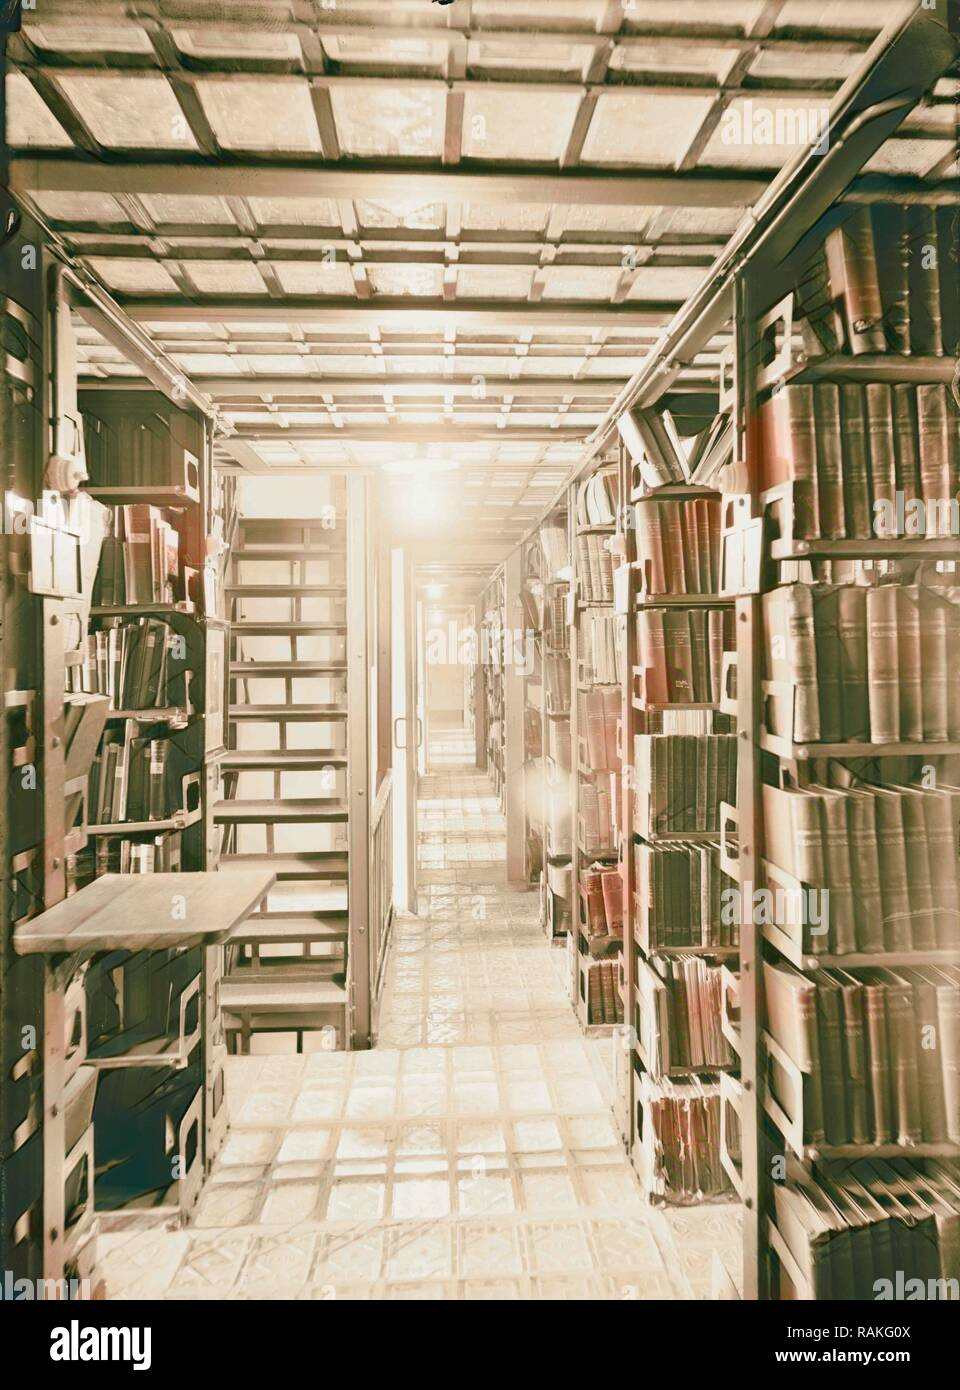 Zionist activities in Palestine. The Hebrew University Library. Book stacks. 1925, Jerusalem. Reimagined - Stock Image